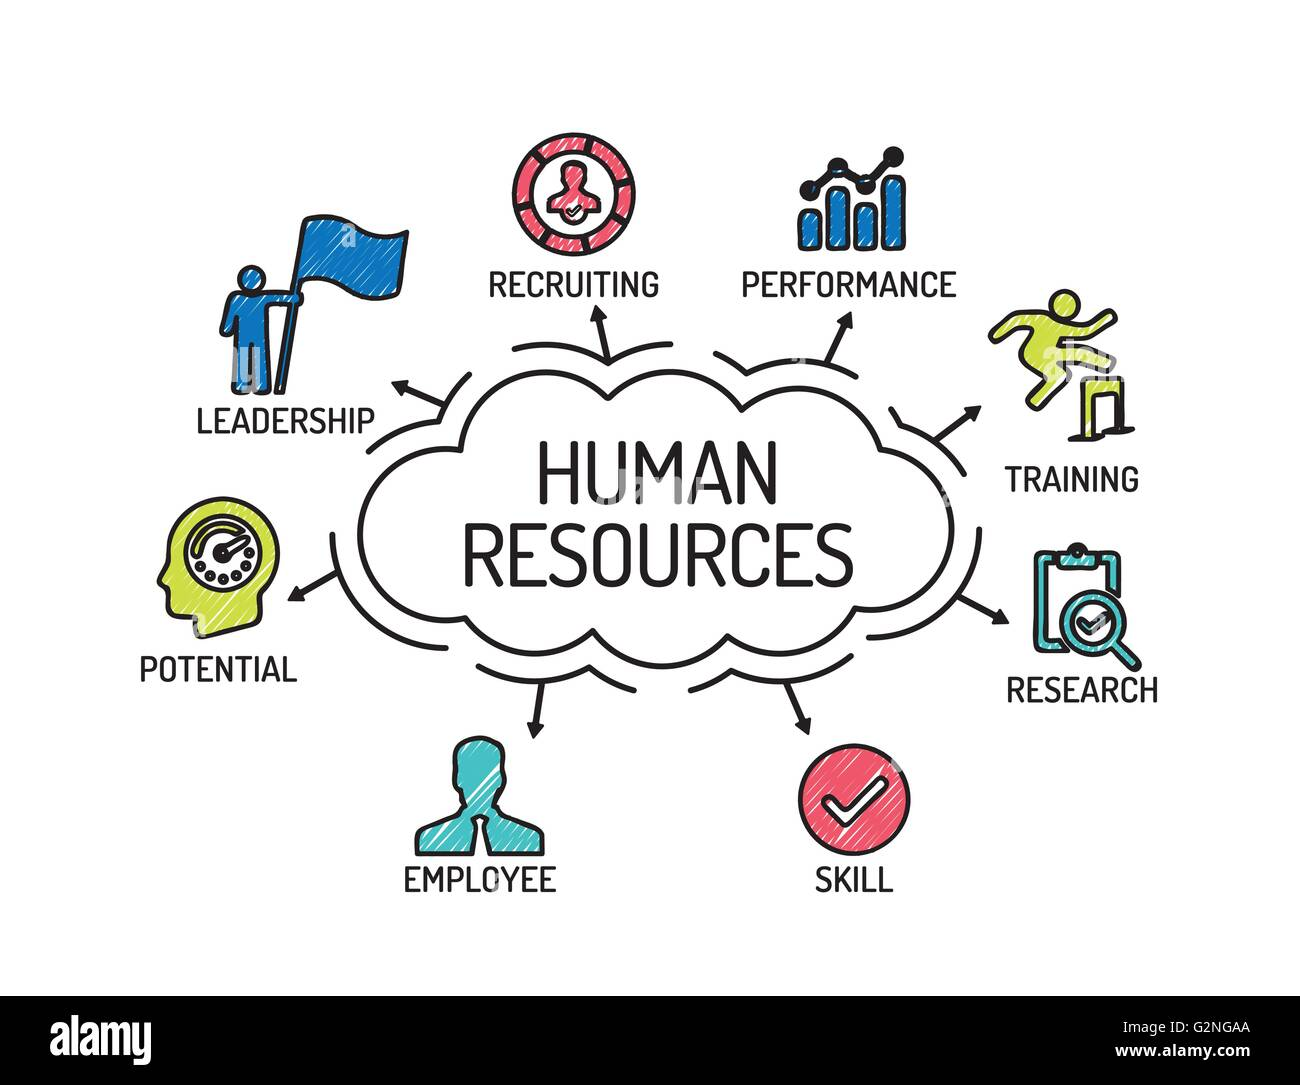 Human Resources Chart With Keywords And Icons Sketch